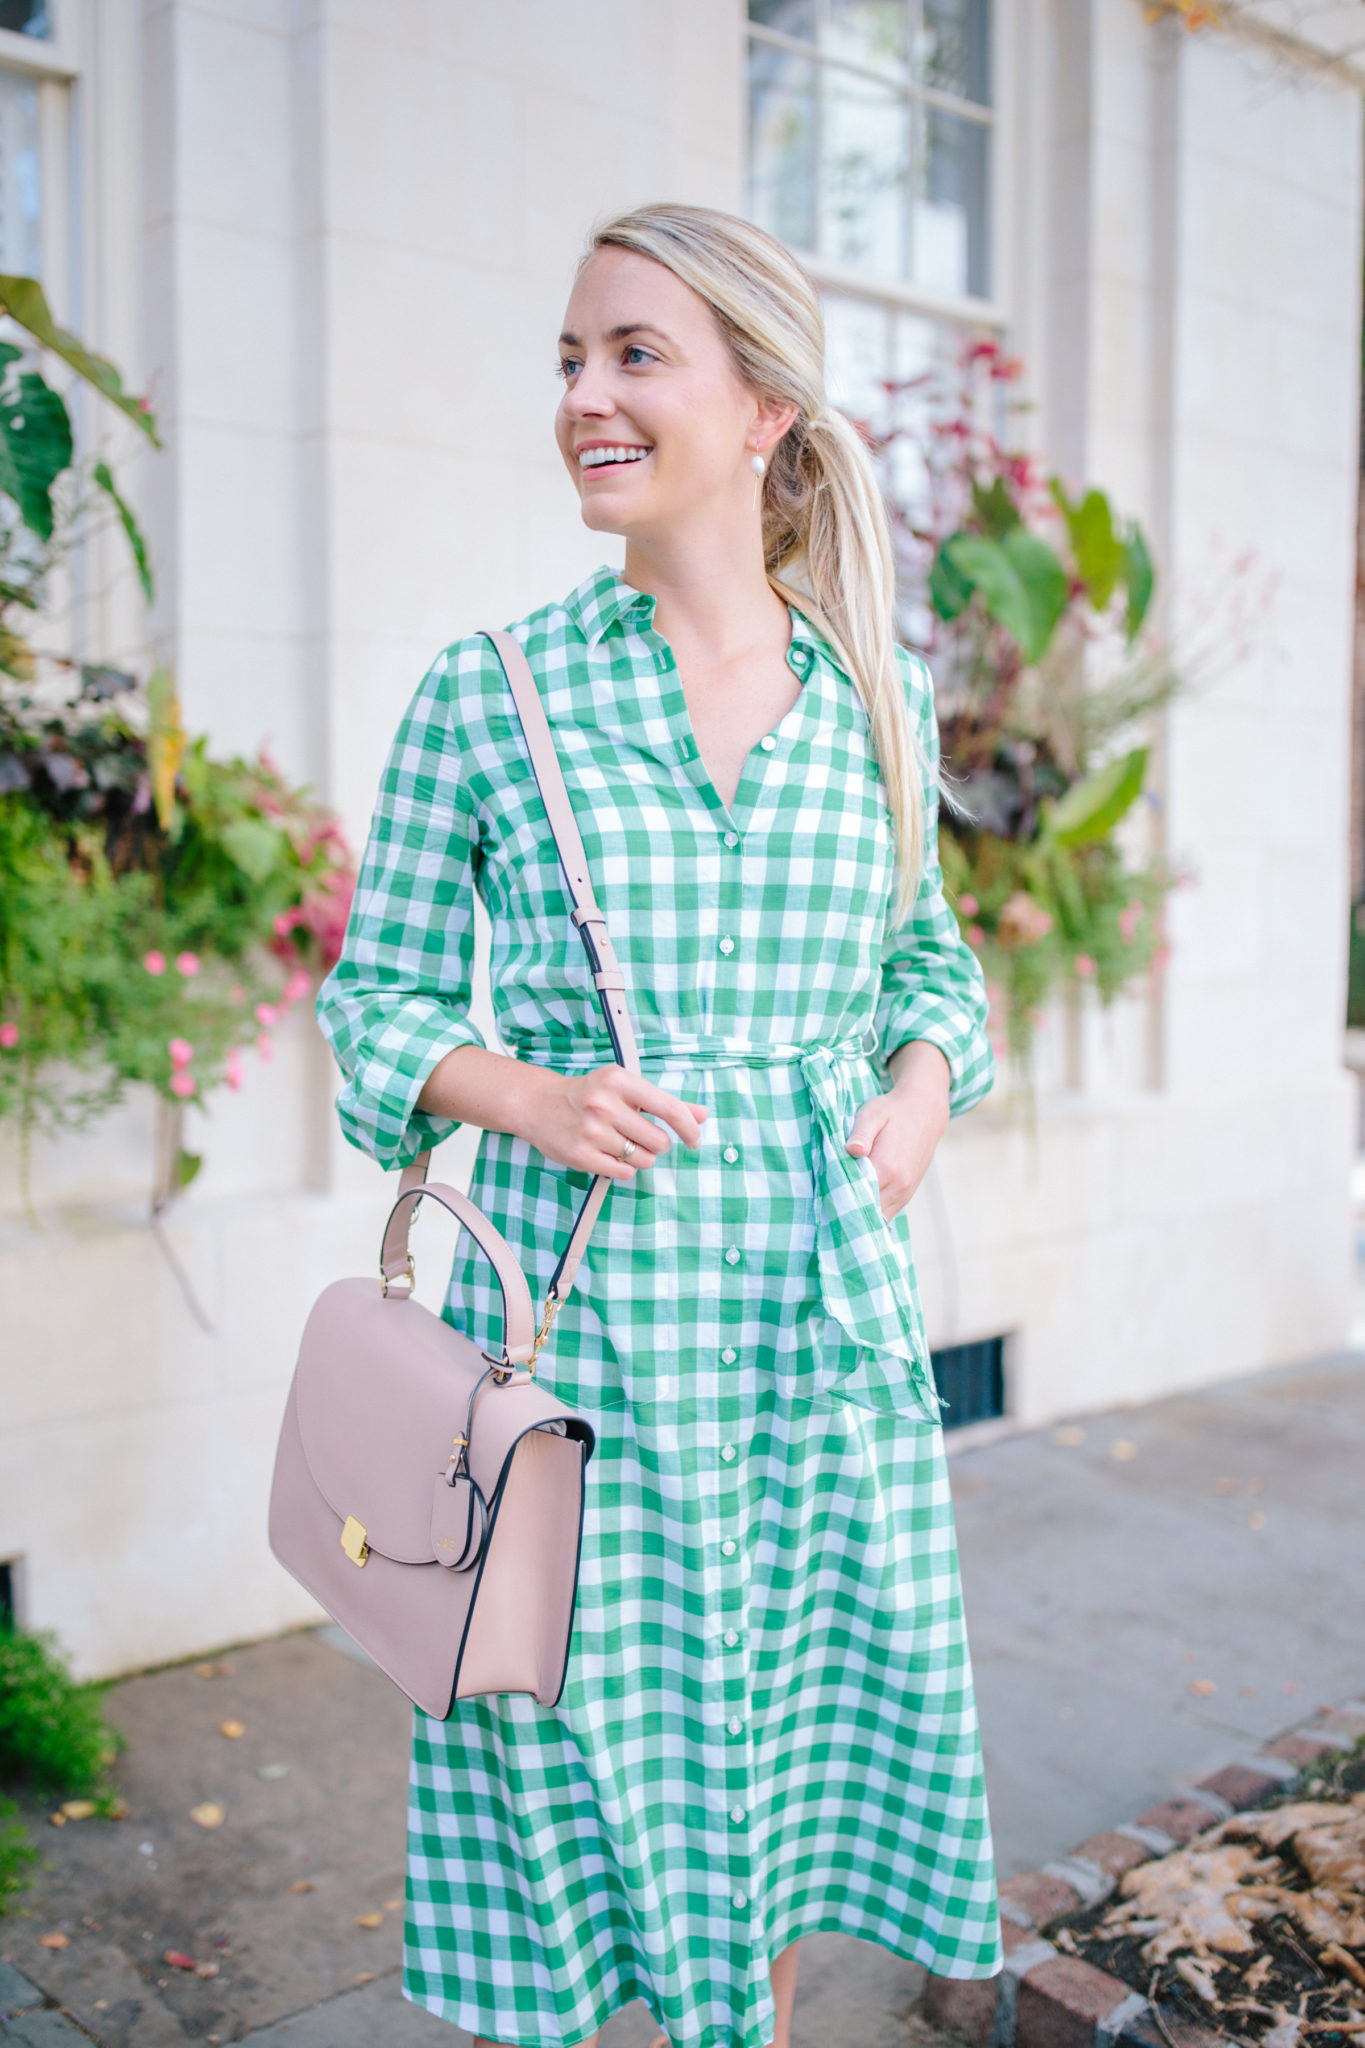 How To Wear A Gingham Dress- Gingham Shirtdresses | Rhyme & Reason